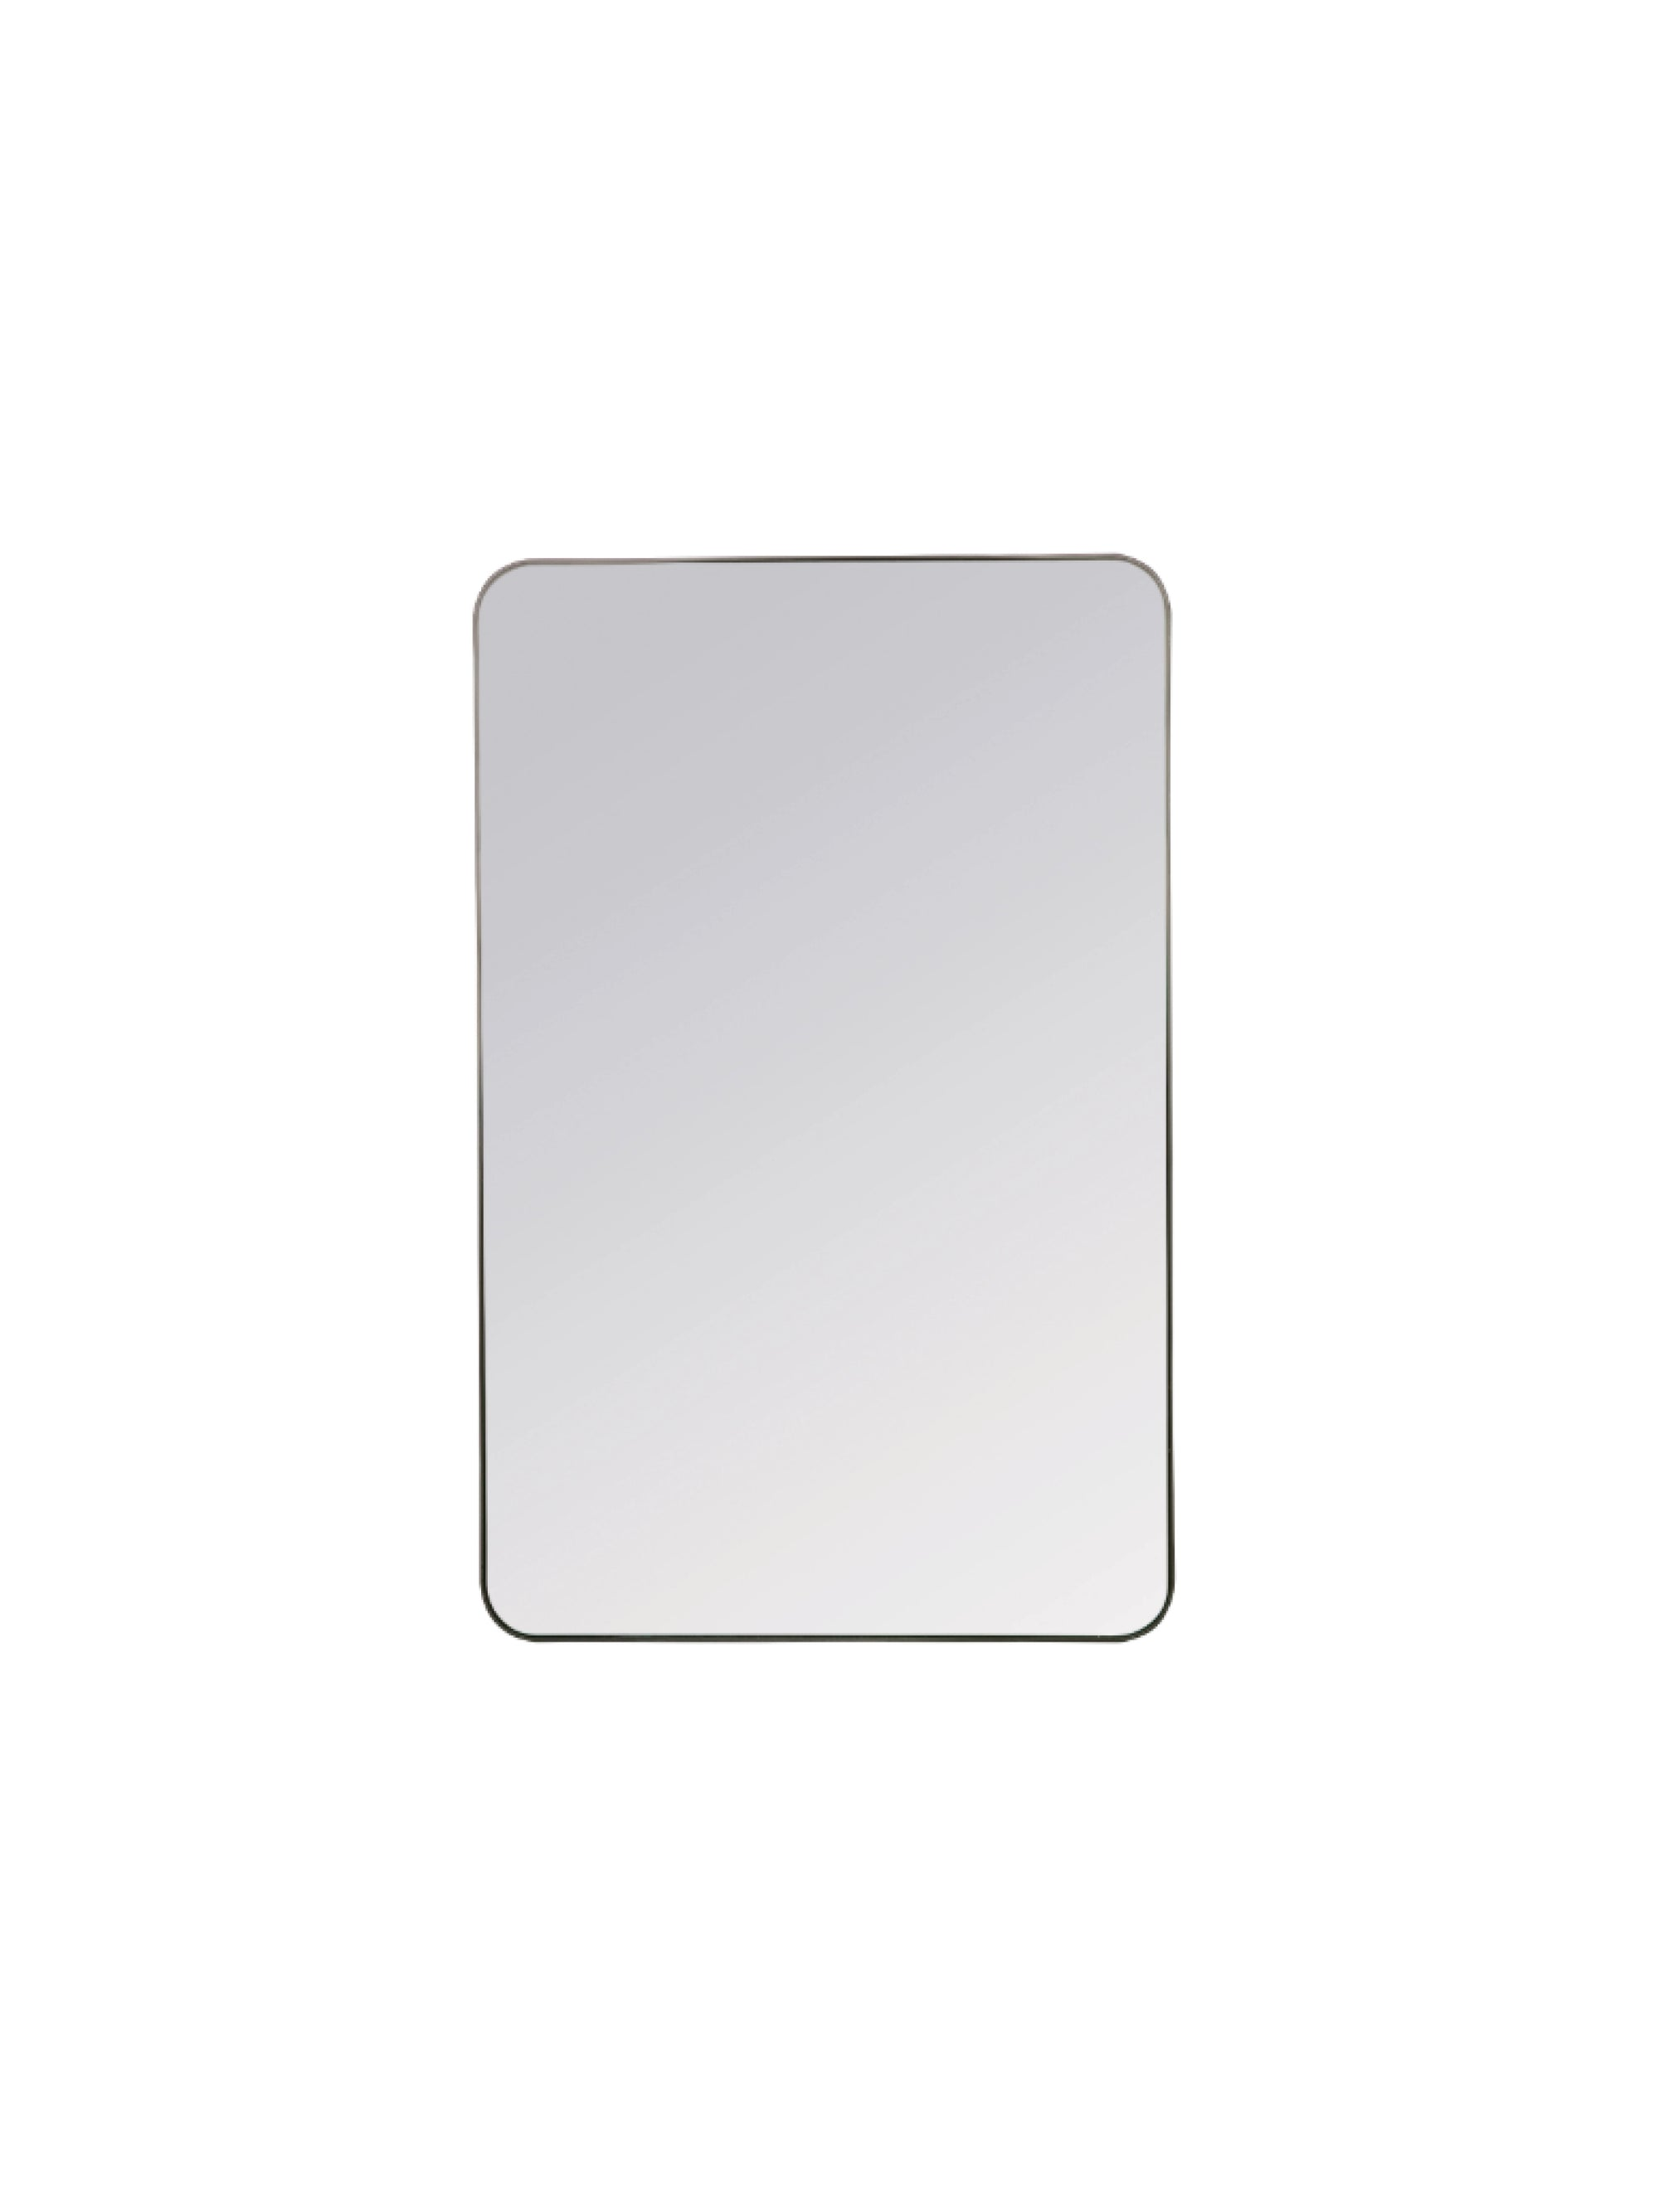 Metal Wall Mirror